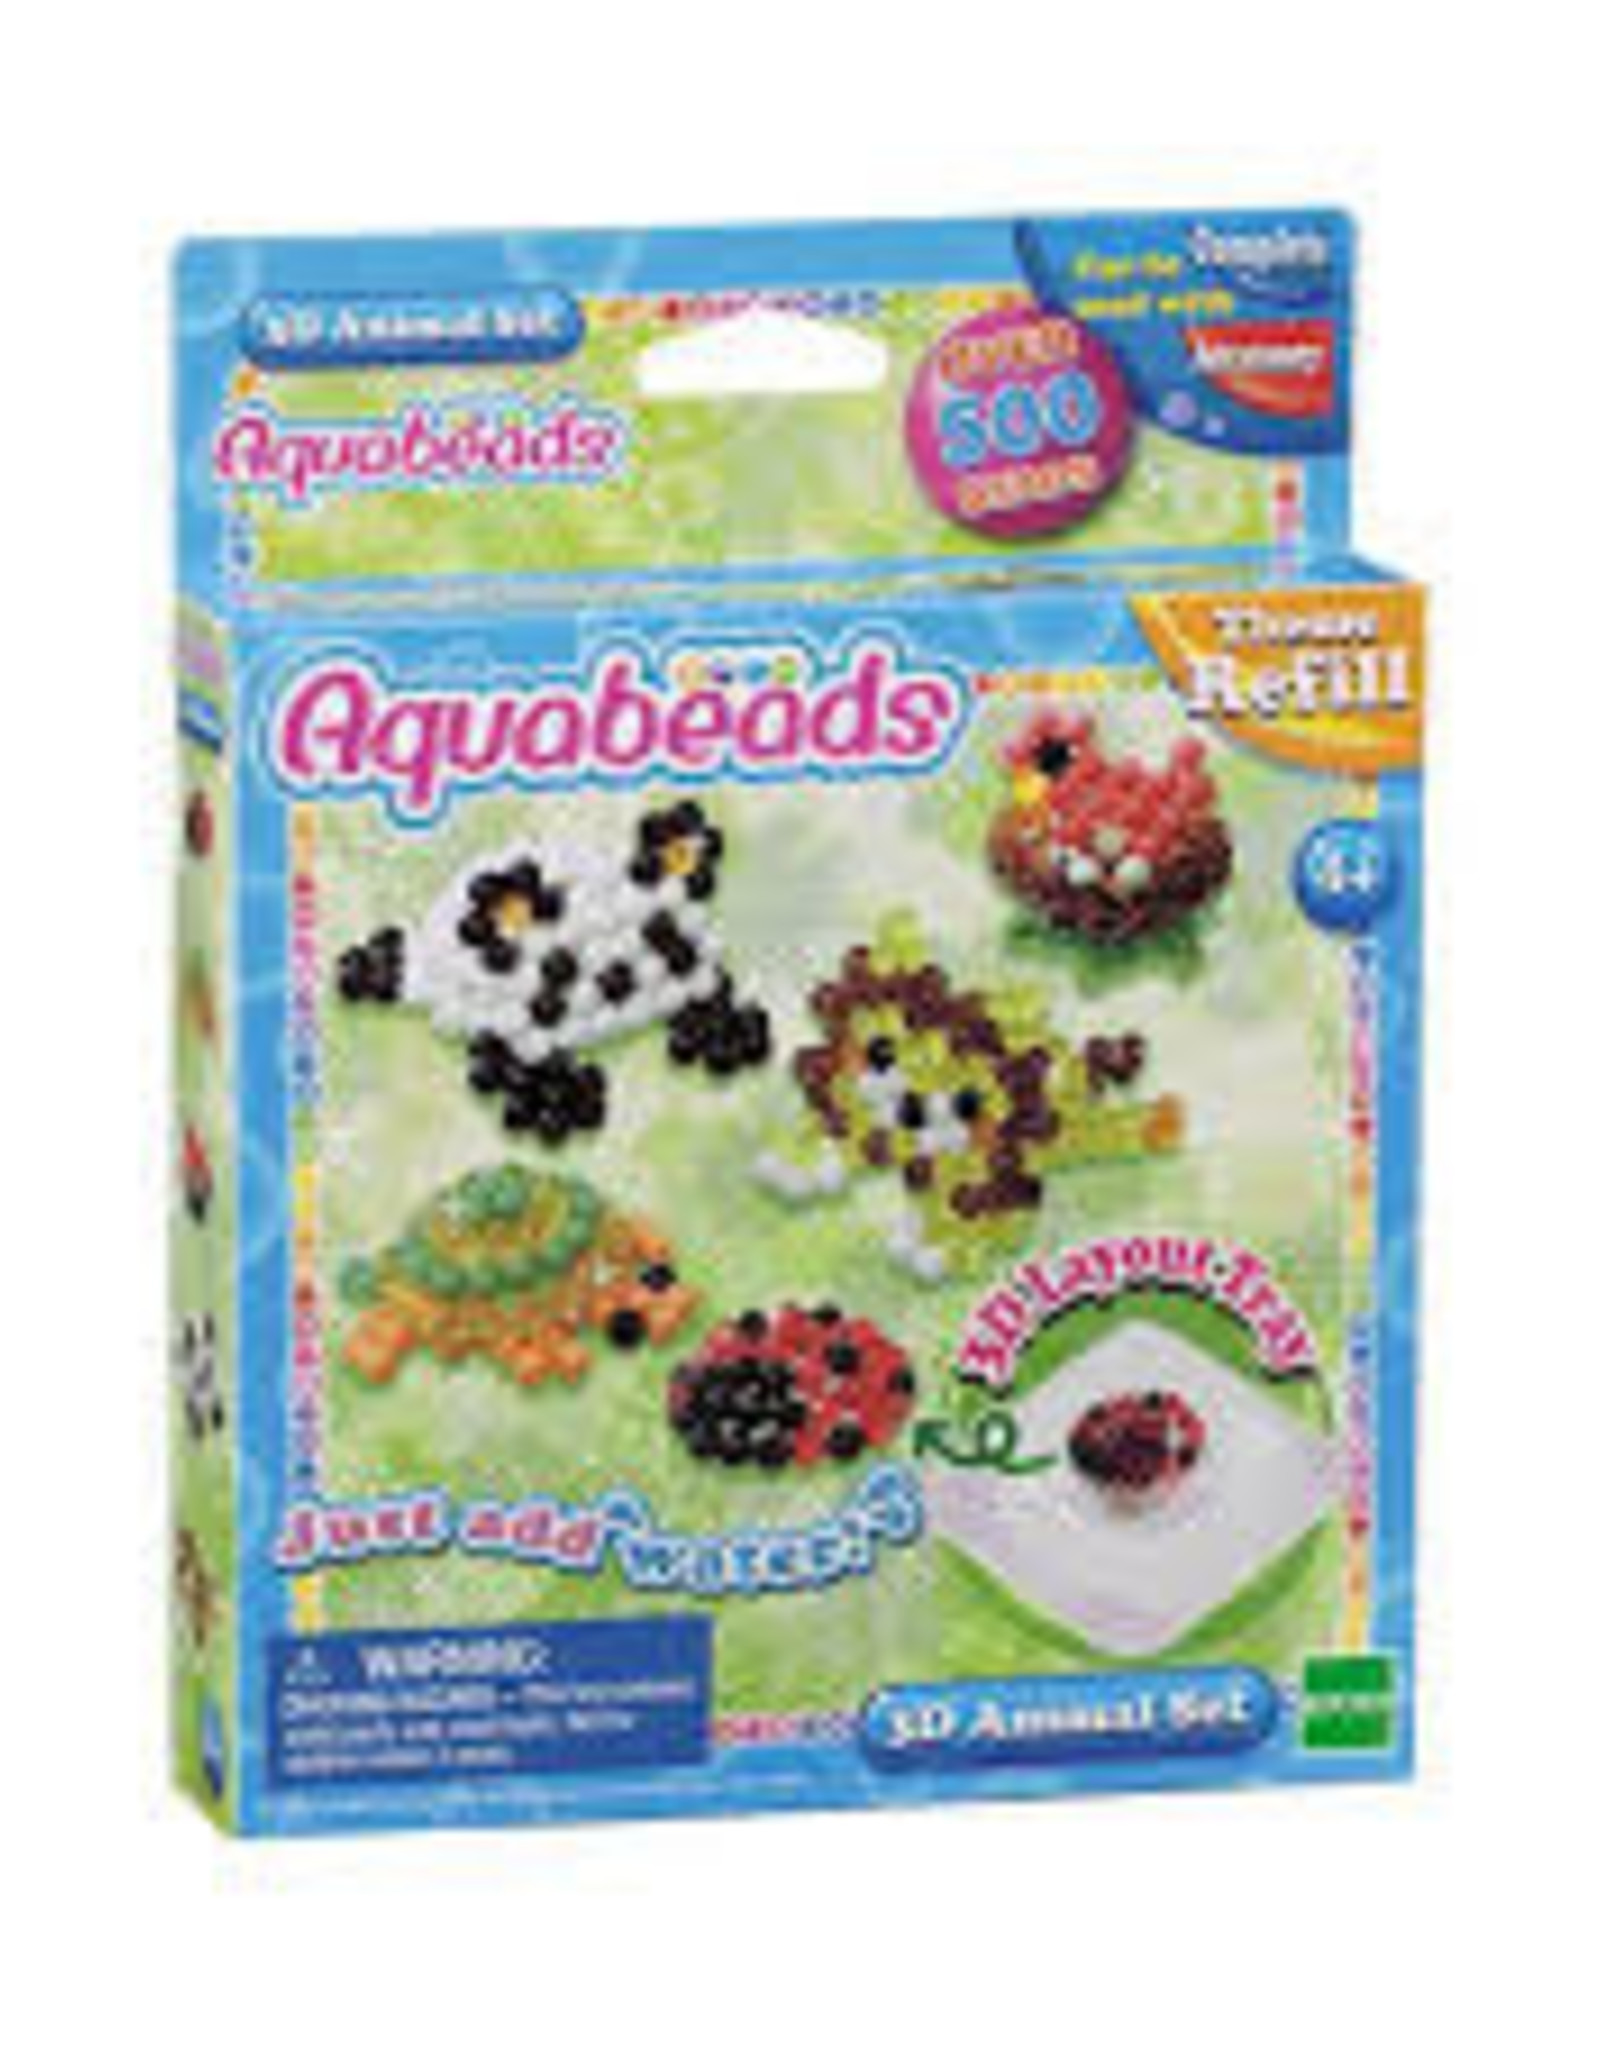 Aquabeads Aquabeads: 3D Animal Set